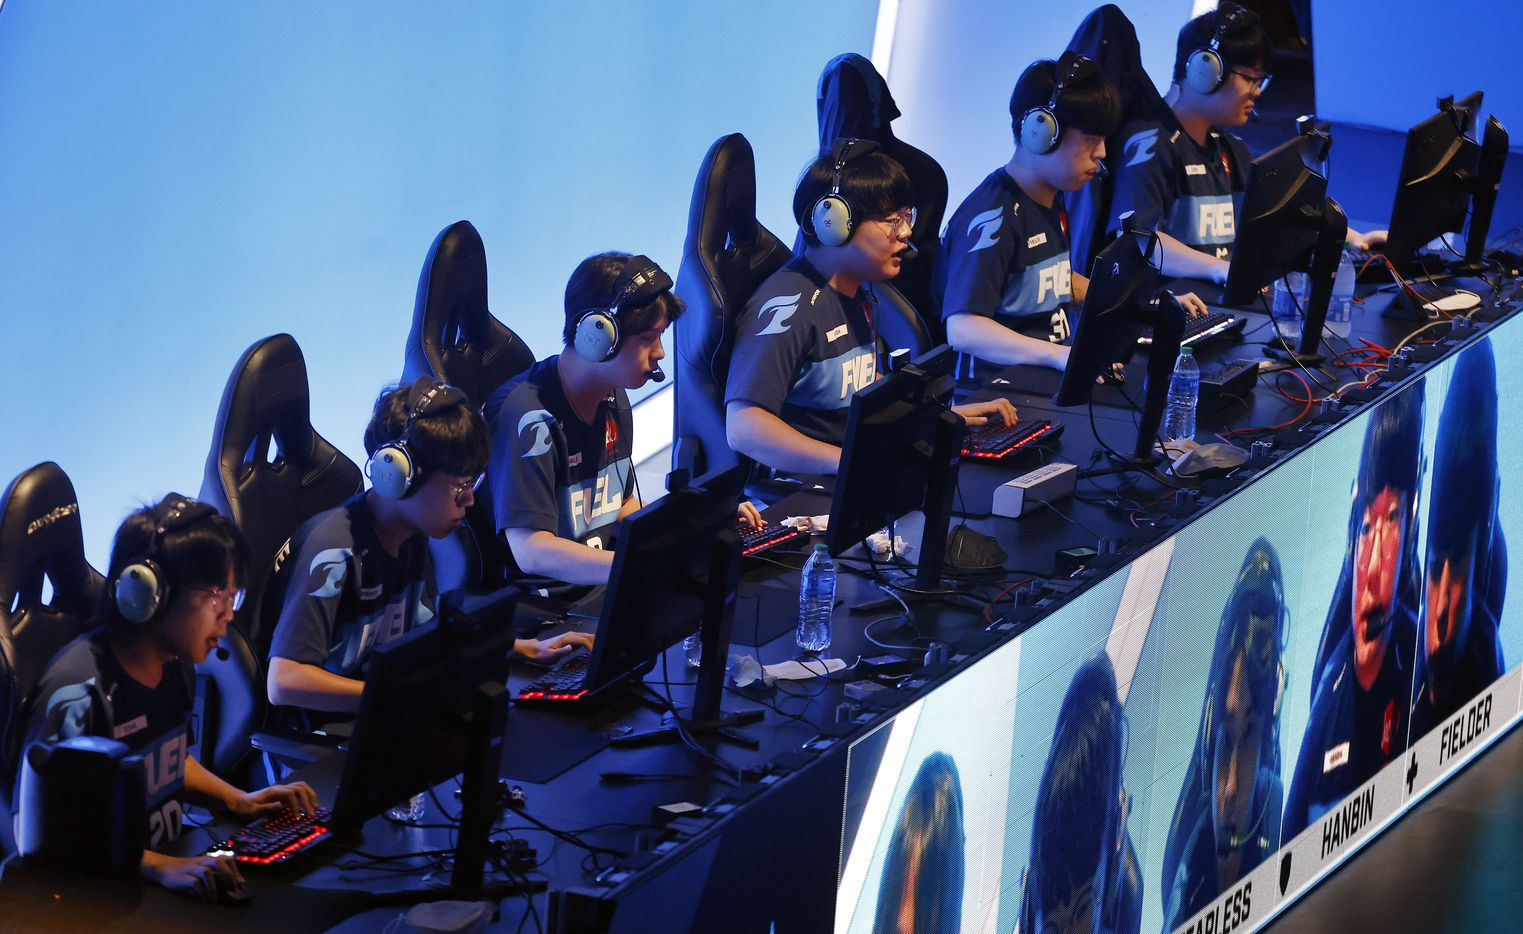 The Dallas Fuel team competes against the Houston Outlaws in their Overwatch League match at Esports Stadium Arlington Friday, July 9, 2021. Dallas Fuel defeated Houston in The Battle for Texas, 3-0. It was the first in-person live competition for fans in over a year. Houston competed from their hometown. (Tom Fox/The Dallas Morning News)